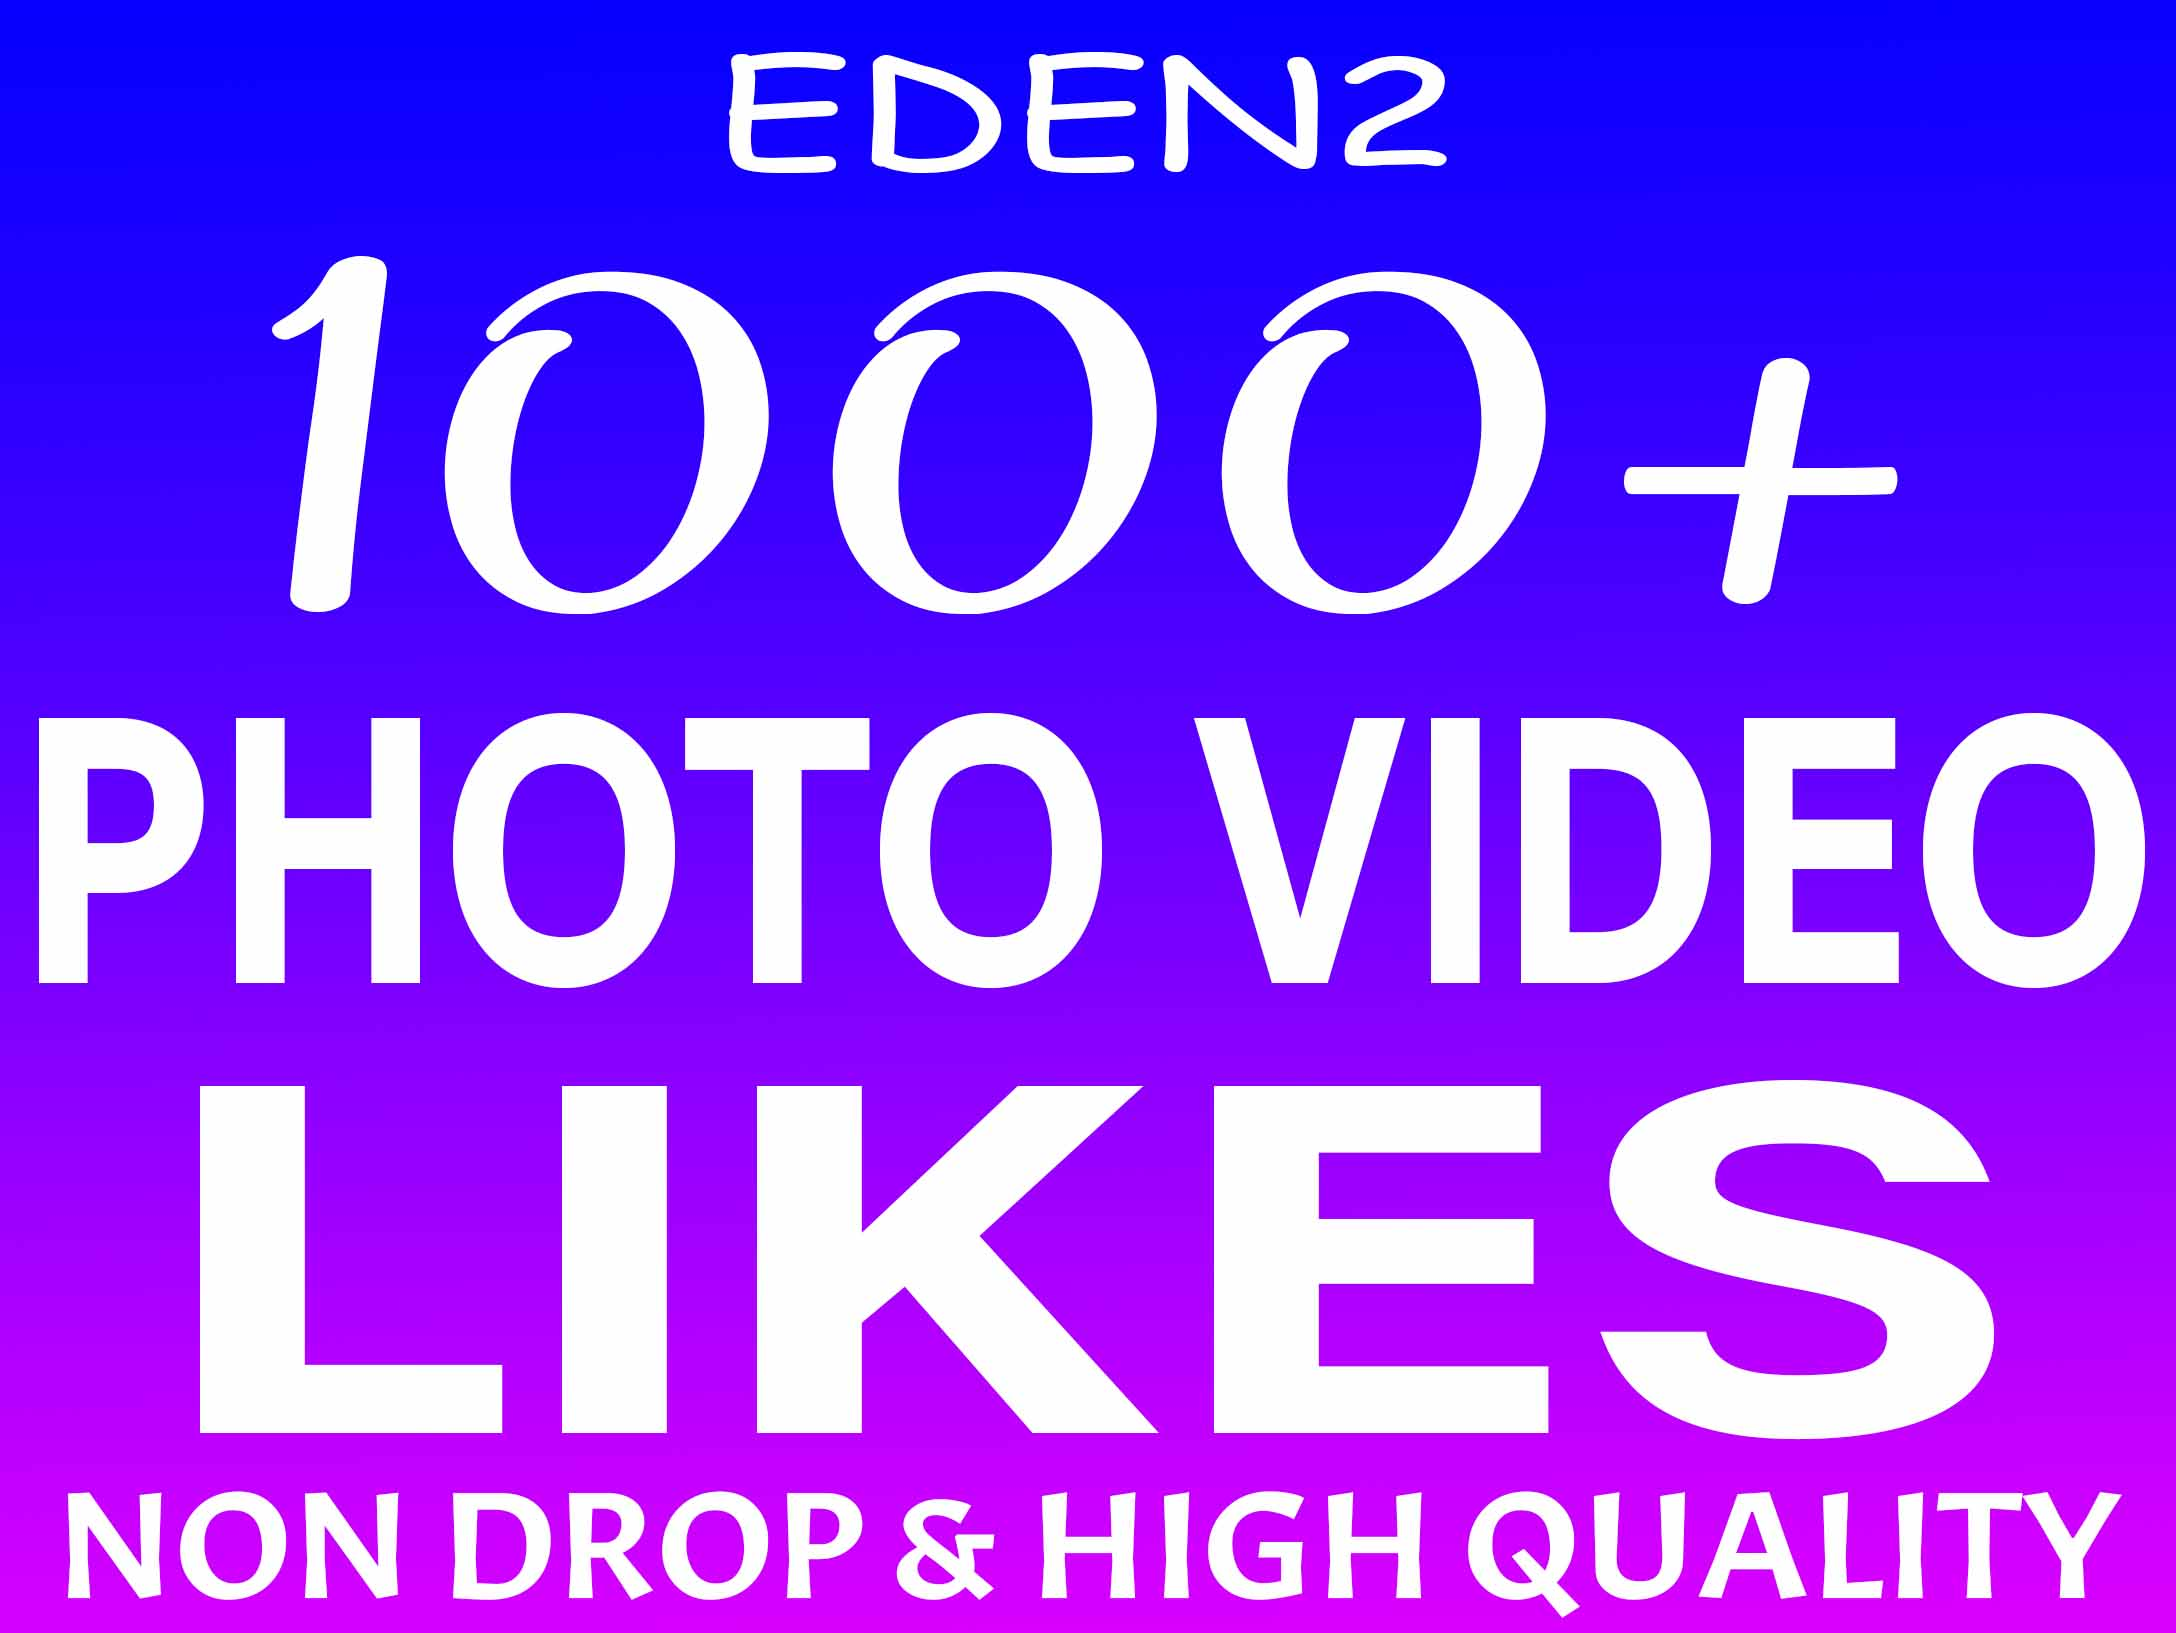 ADD 1000+ SOCIAL PHOTO OR VIDEO PROMOTION NON DROP AND HIGH QUALITY WITH INSTANT START